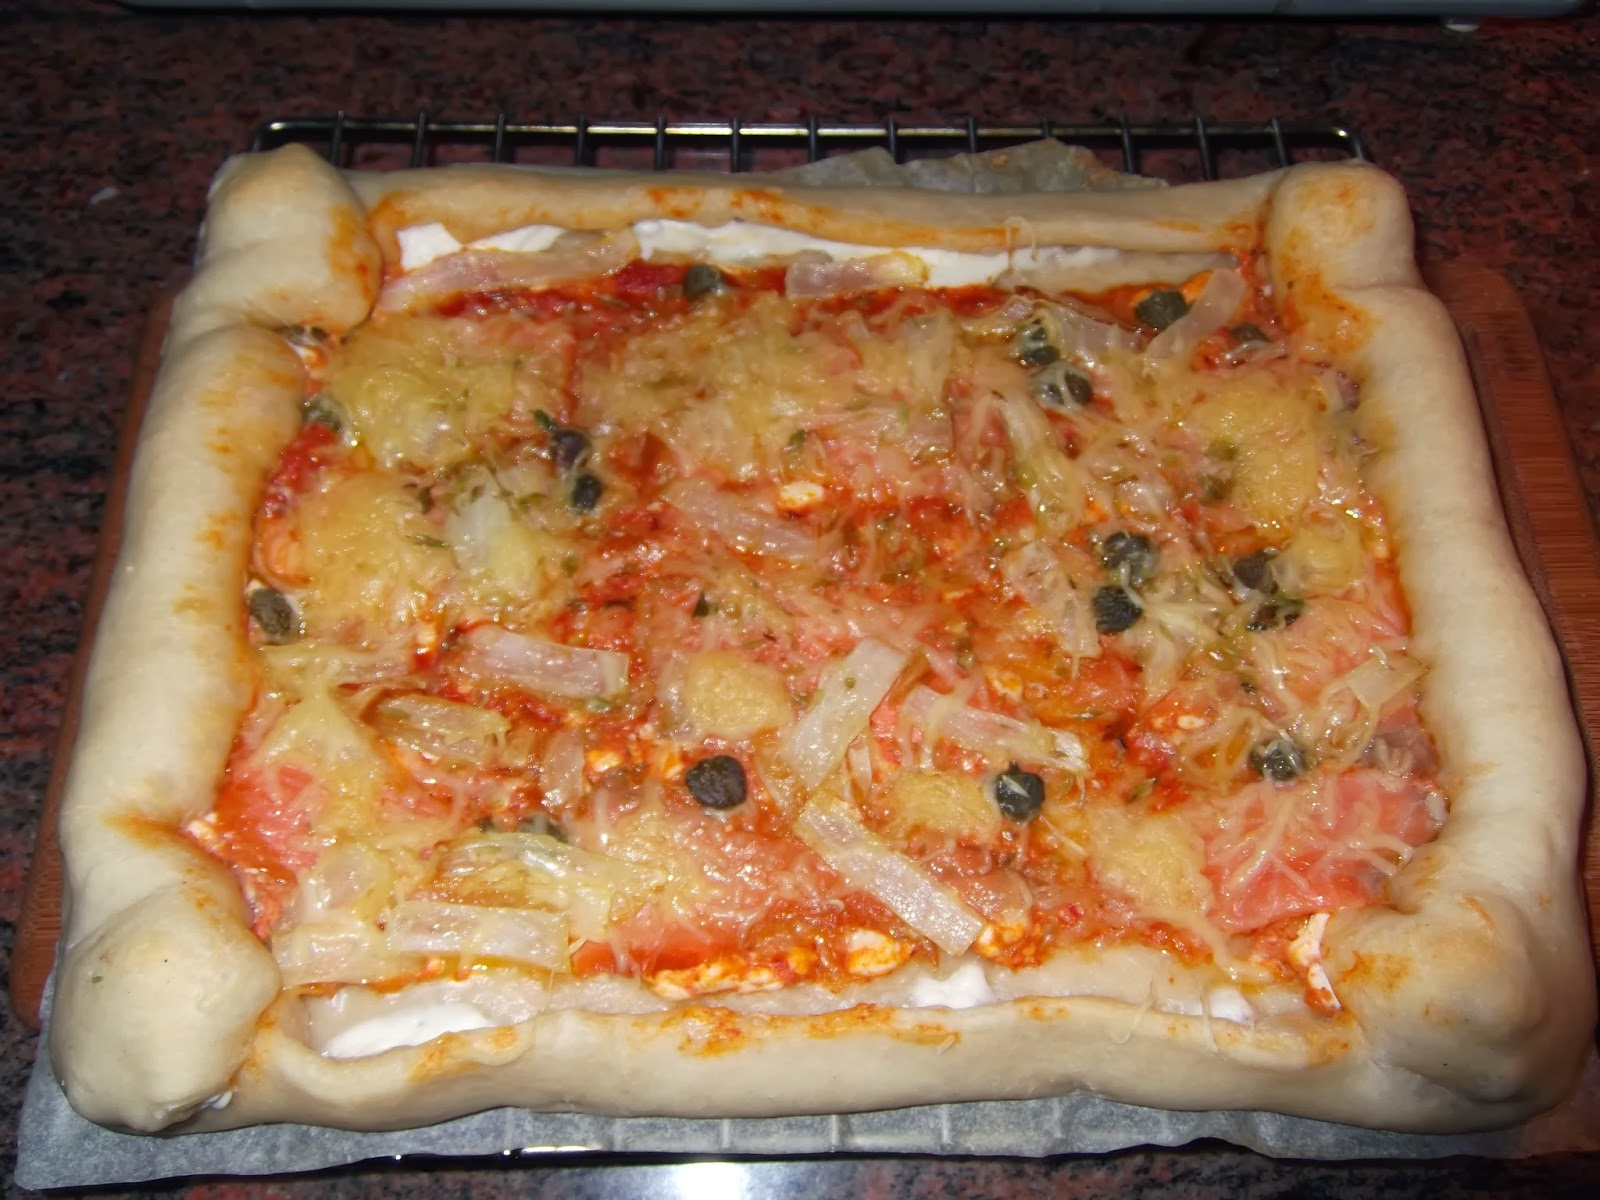 PIZZA DE SALM�N CON BORDE DE QUESO